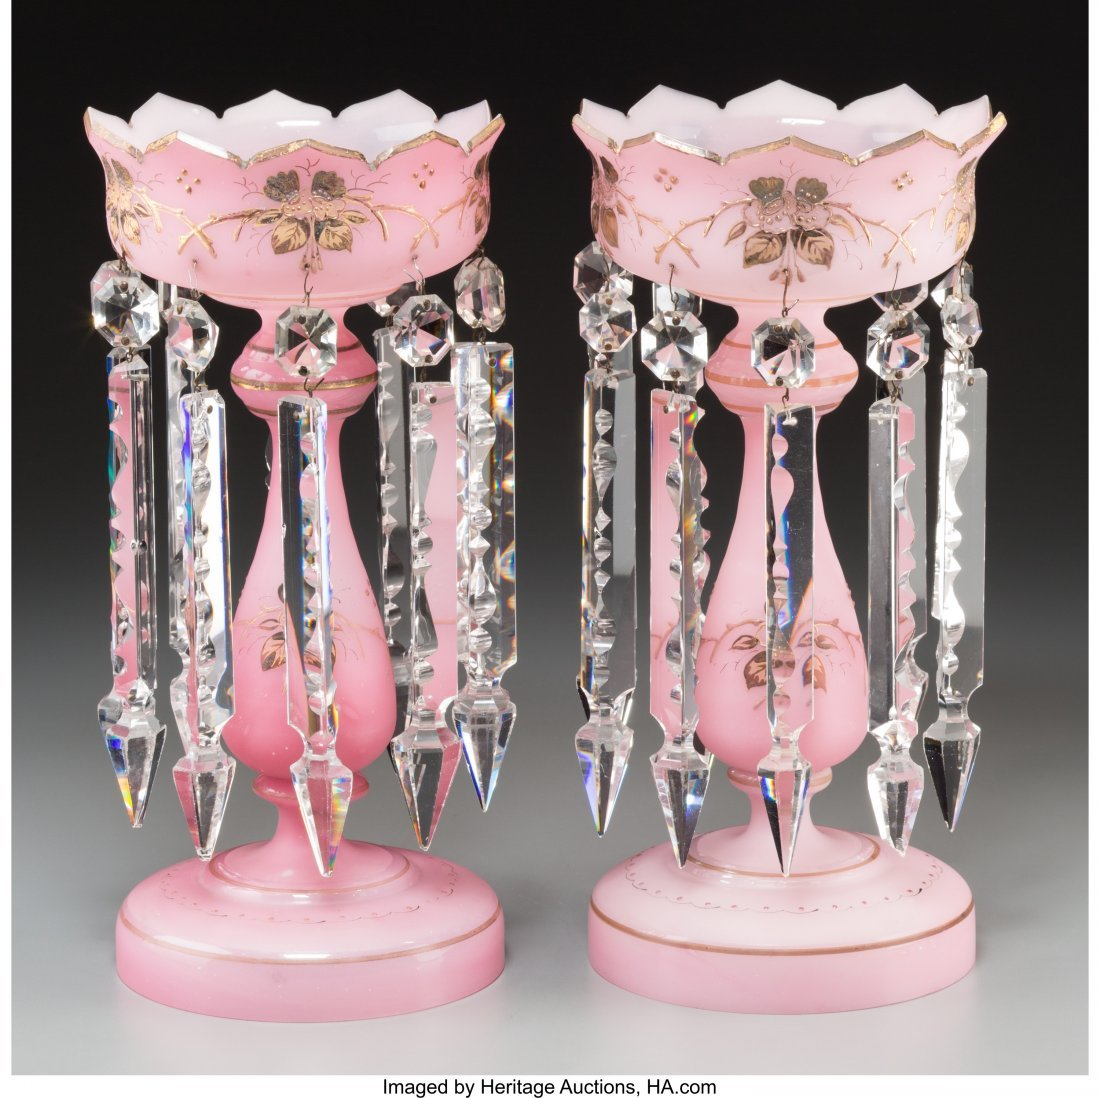 61891: A Pair of French Pink Opaline Glass Lusters, lat